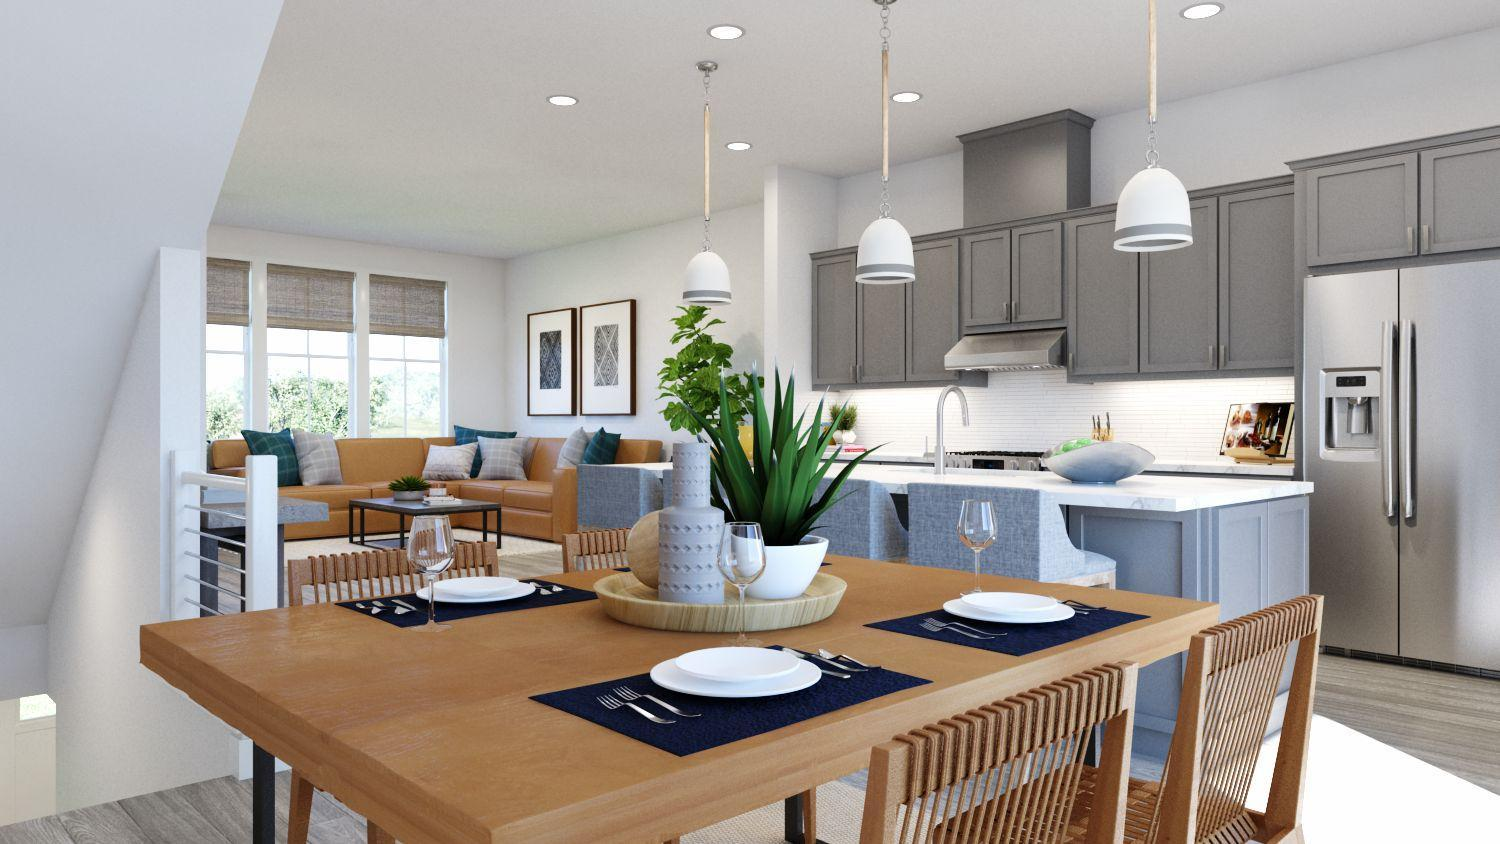 Kitchen featured in the Newport Residence 2 By Trumark Homes in Oakland-Alameda, CA